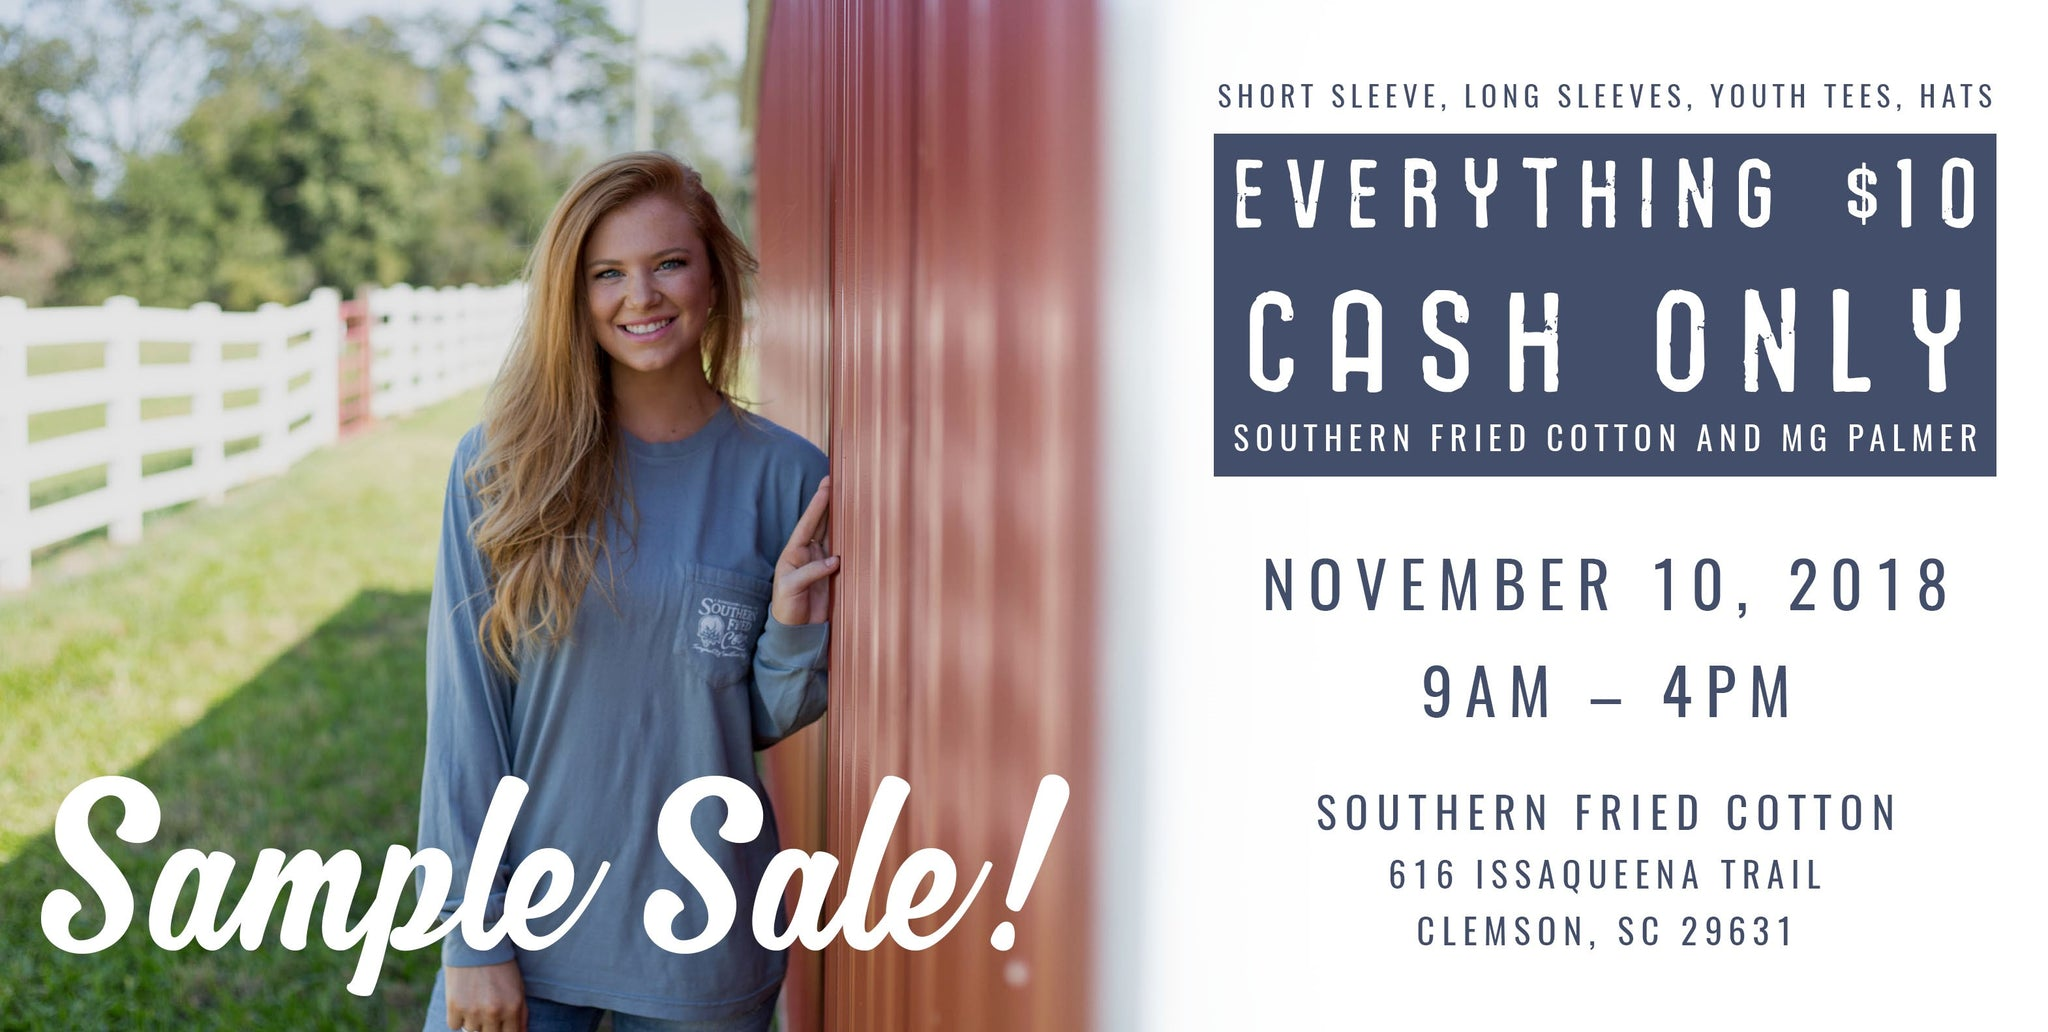 2018 Sample Sale